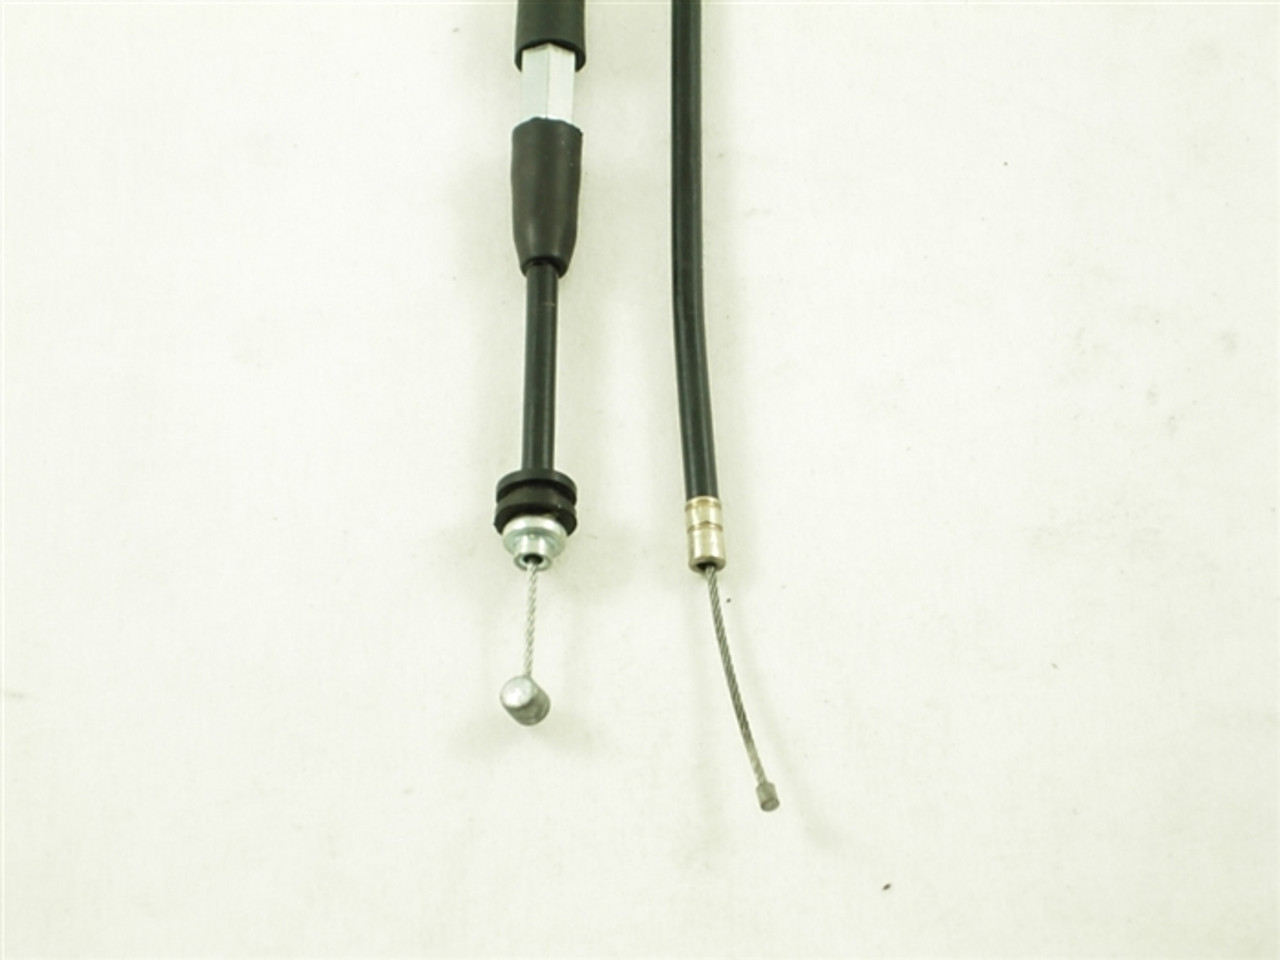 thottle cable 12150-a120-8